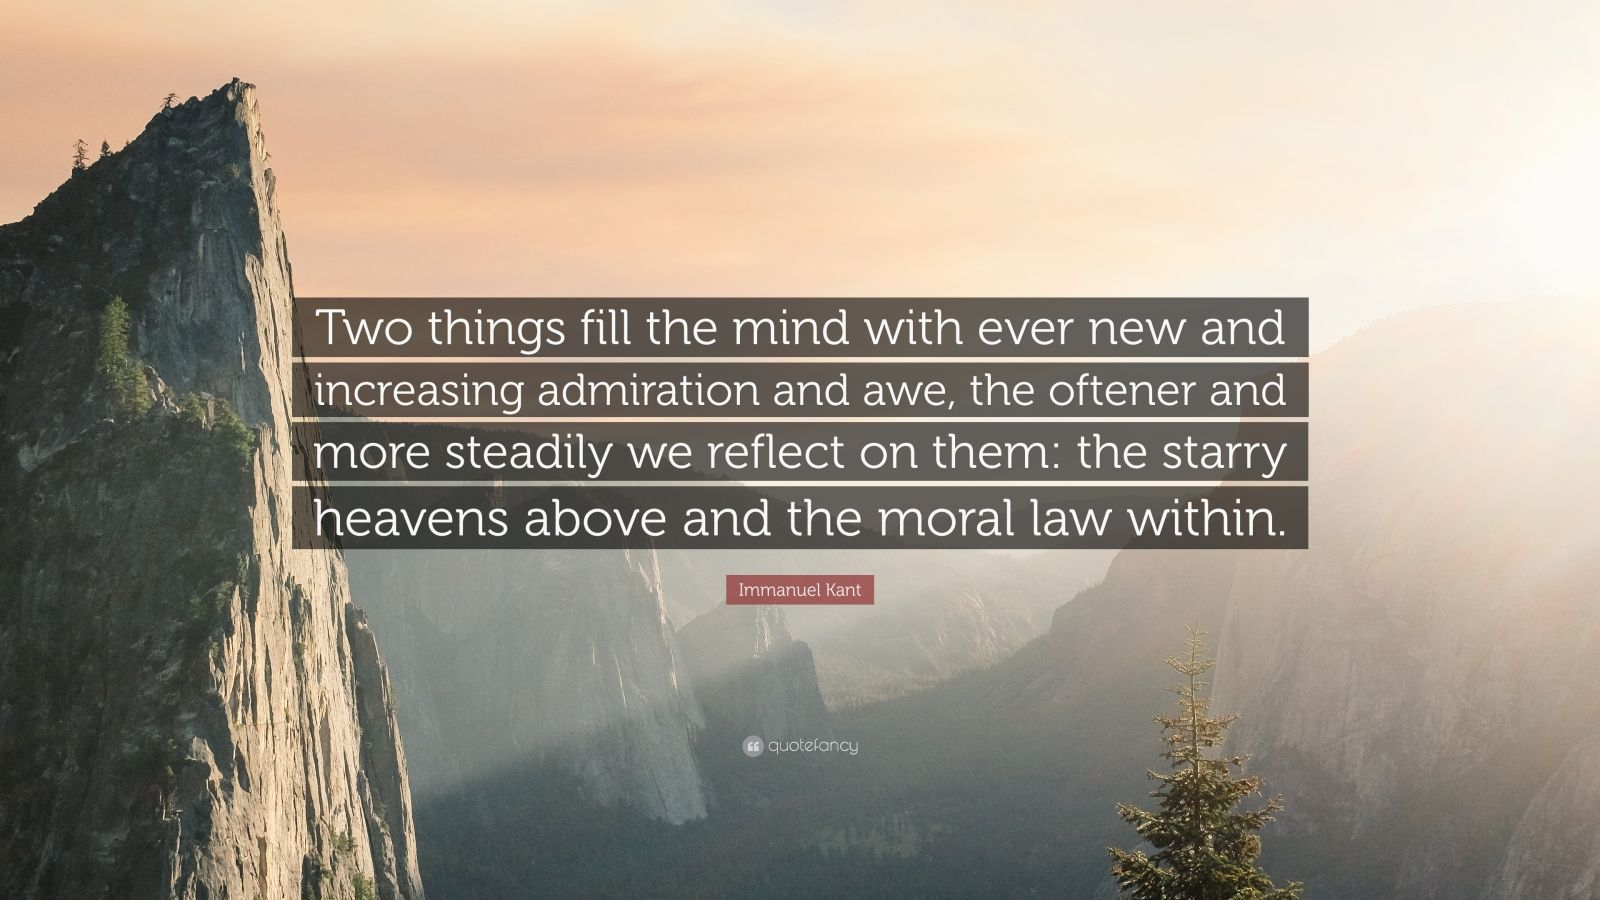 """Immanuel Kant Quote: """"Two things fill the mind with ever new and increasing admiration and awe, the oftener and more steadily we reflect on them: the starry heavens above and the moral law within."""""""